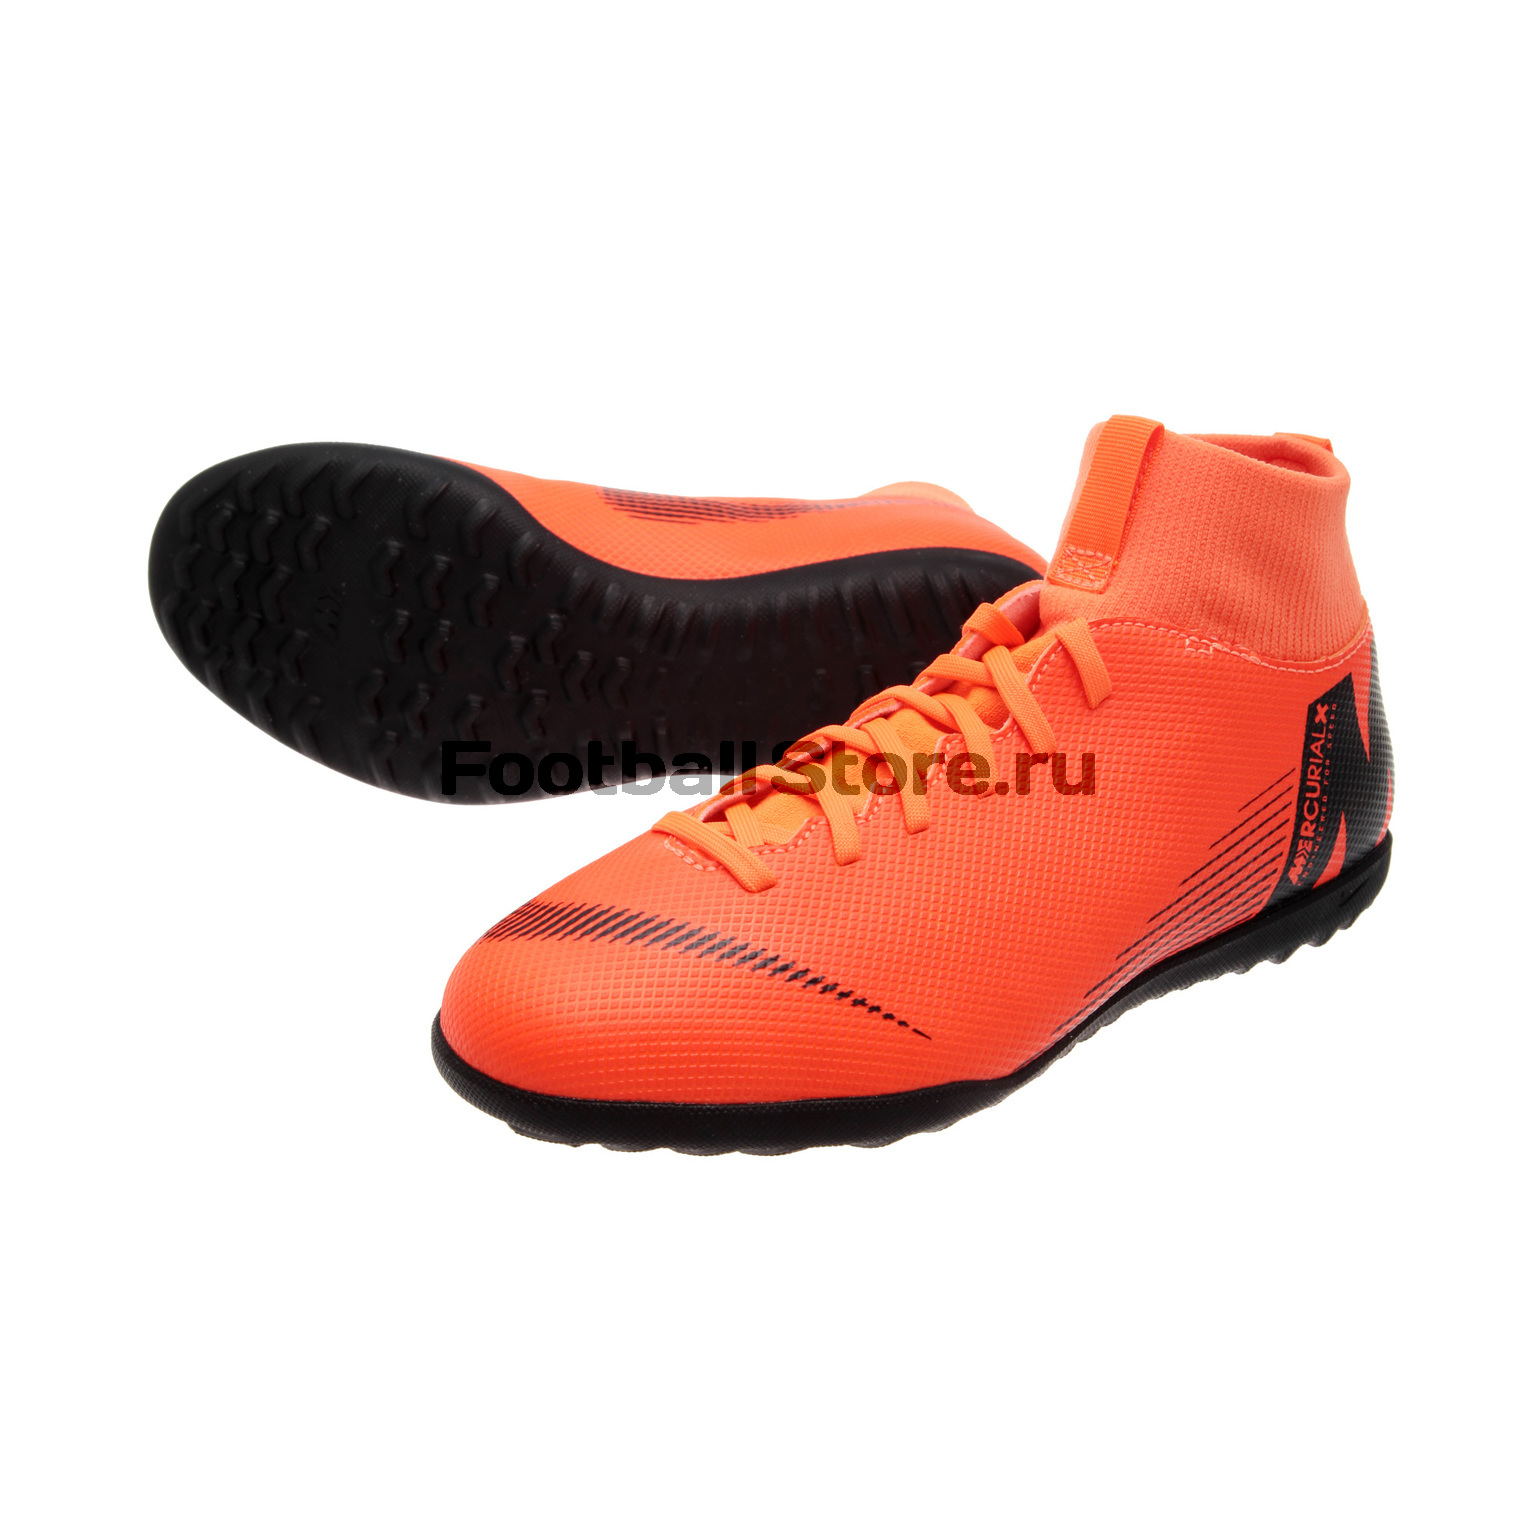 Шиповки Nike JR SuperflyX 6 Club TF AH7345-810 шиповки nike шиповки nike hypervenomx proximo ii df tf 852576 801